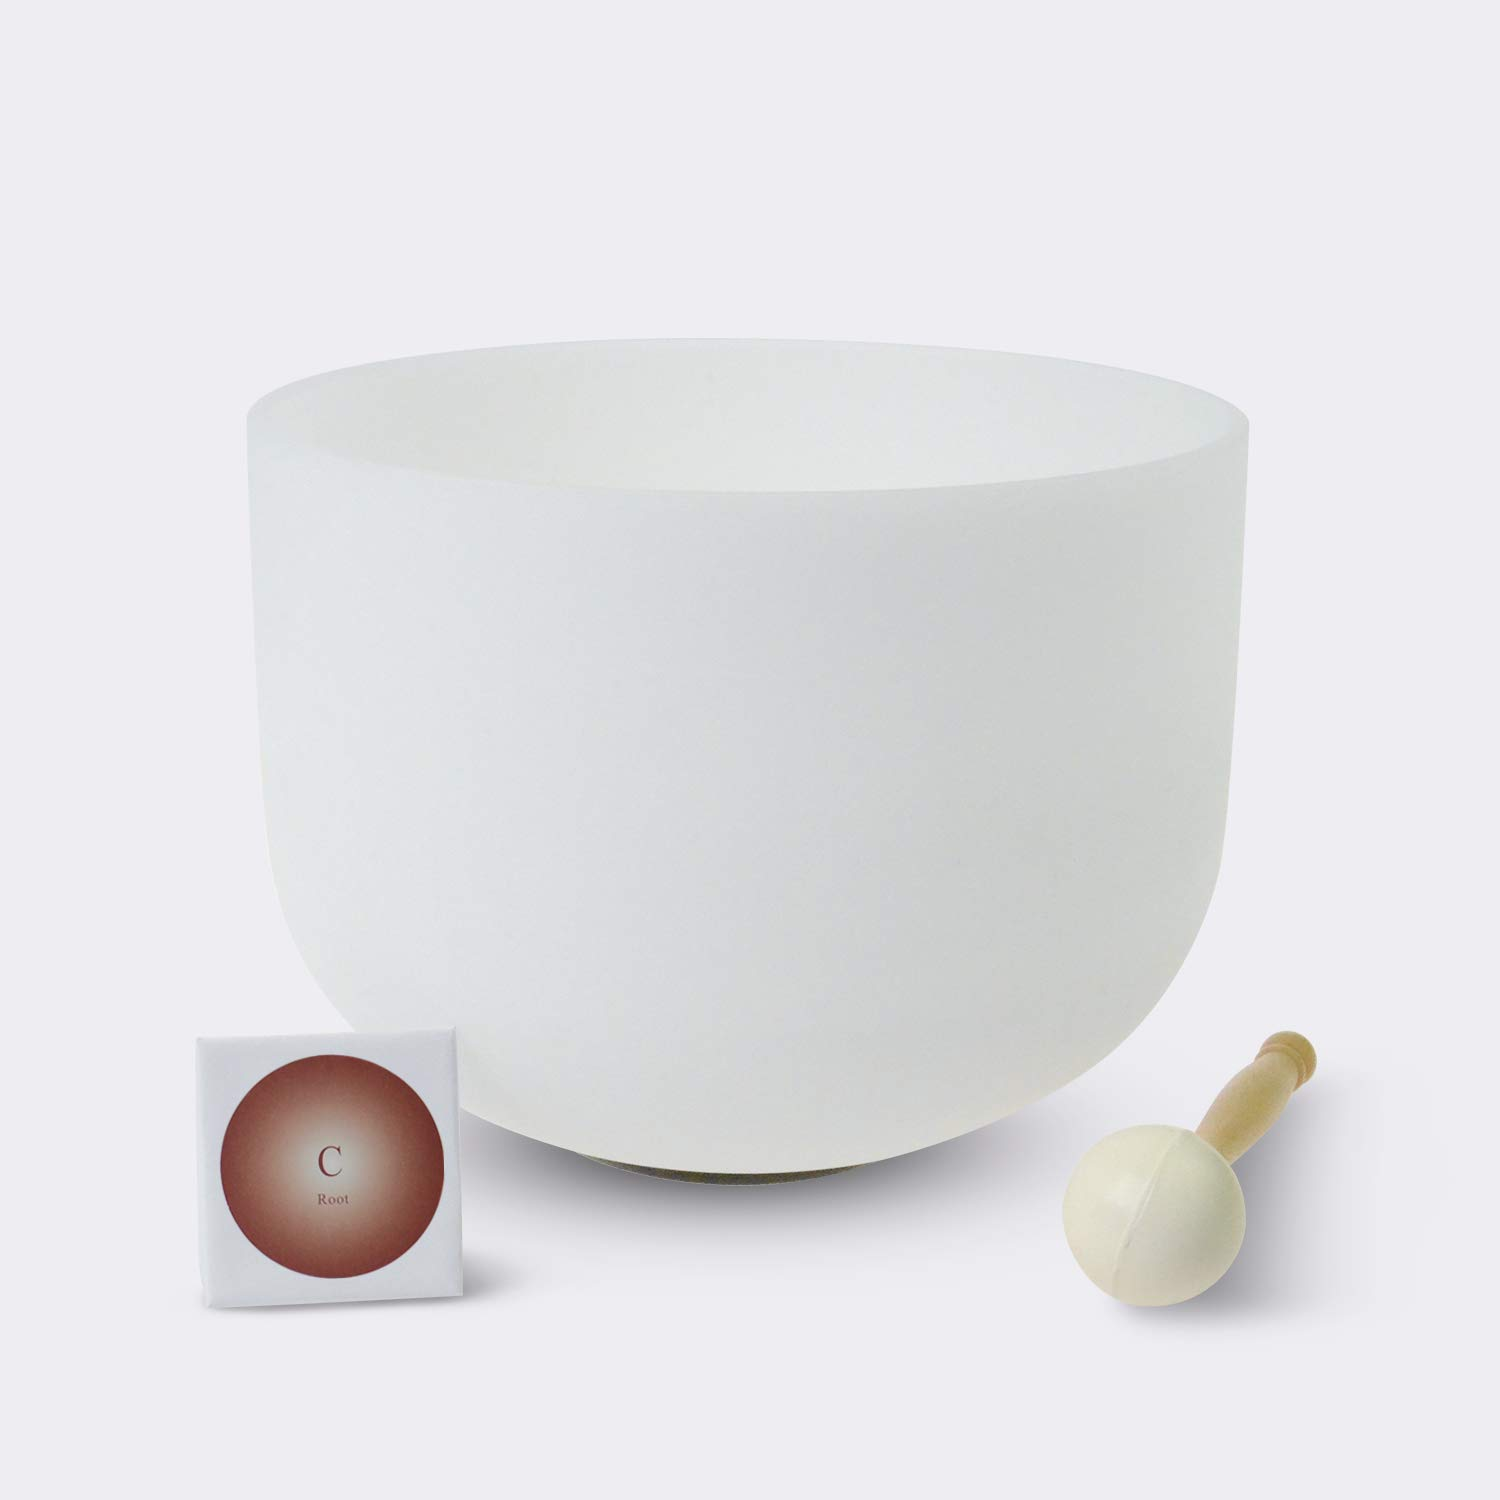 TOPFUND Singing Bowls C Note Crystal Singing Bowl Root Chakra 12 inch (O-Ring and Rubber Mallet Included) by TOPFUND (Image #1)